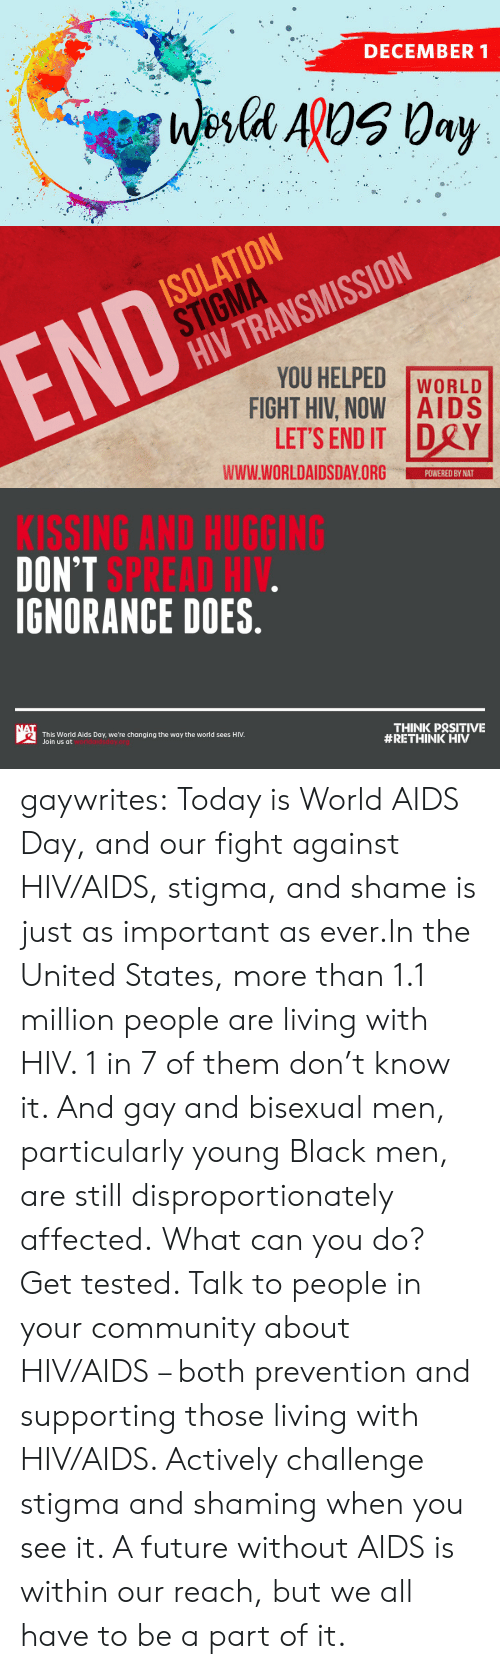 Men Are: DECEMBER 1  Wesla ApOS 0ay   ISOLATION  STIGMA  HIV TRANSMISSION  END  YOU HELPED  FIGHT HIV, NOW AIDS  LET'S END IT DRY  WORLD  www.WORLDAIDSDAY.ORG  POWERED BY NAT   KISSING AND HUGGING  DON'T SPREAD HIV.  IGNORANCE DOES.  NAT  THINK PRSITIVE  #RETHINK HIV  This World Aids Day, we're changing the way the world sees HIV.  Join us at gaywrites:  Today is World AIDS Day, and our fight against HIV/AIDS, stigma, and shame is just as important as ever.In the United States, more than 1.1 million people are living with HIV. 1 in 7 of them don't know it. And gay and bisexual men, particularly young Black men, are still disproportionately affected. What can you do? Get tested. Talk to people in your community about HIV/AIDS – both prevention and supporting those living with HIV/AIDS. Actively challenge stigma and shaming when you see it. A future without AIDS is within our reach, but we all have to be a part of it.